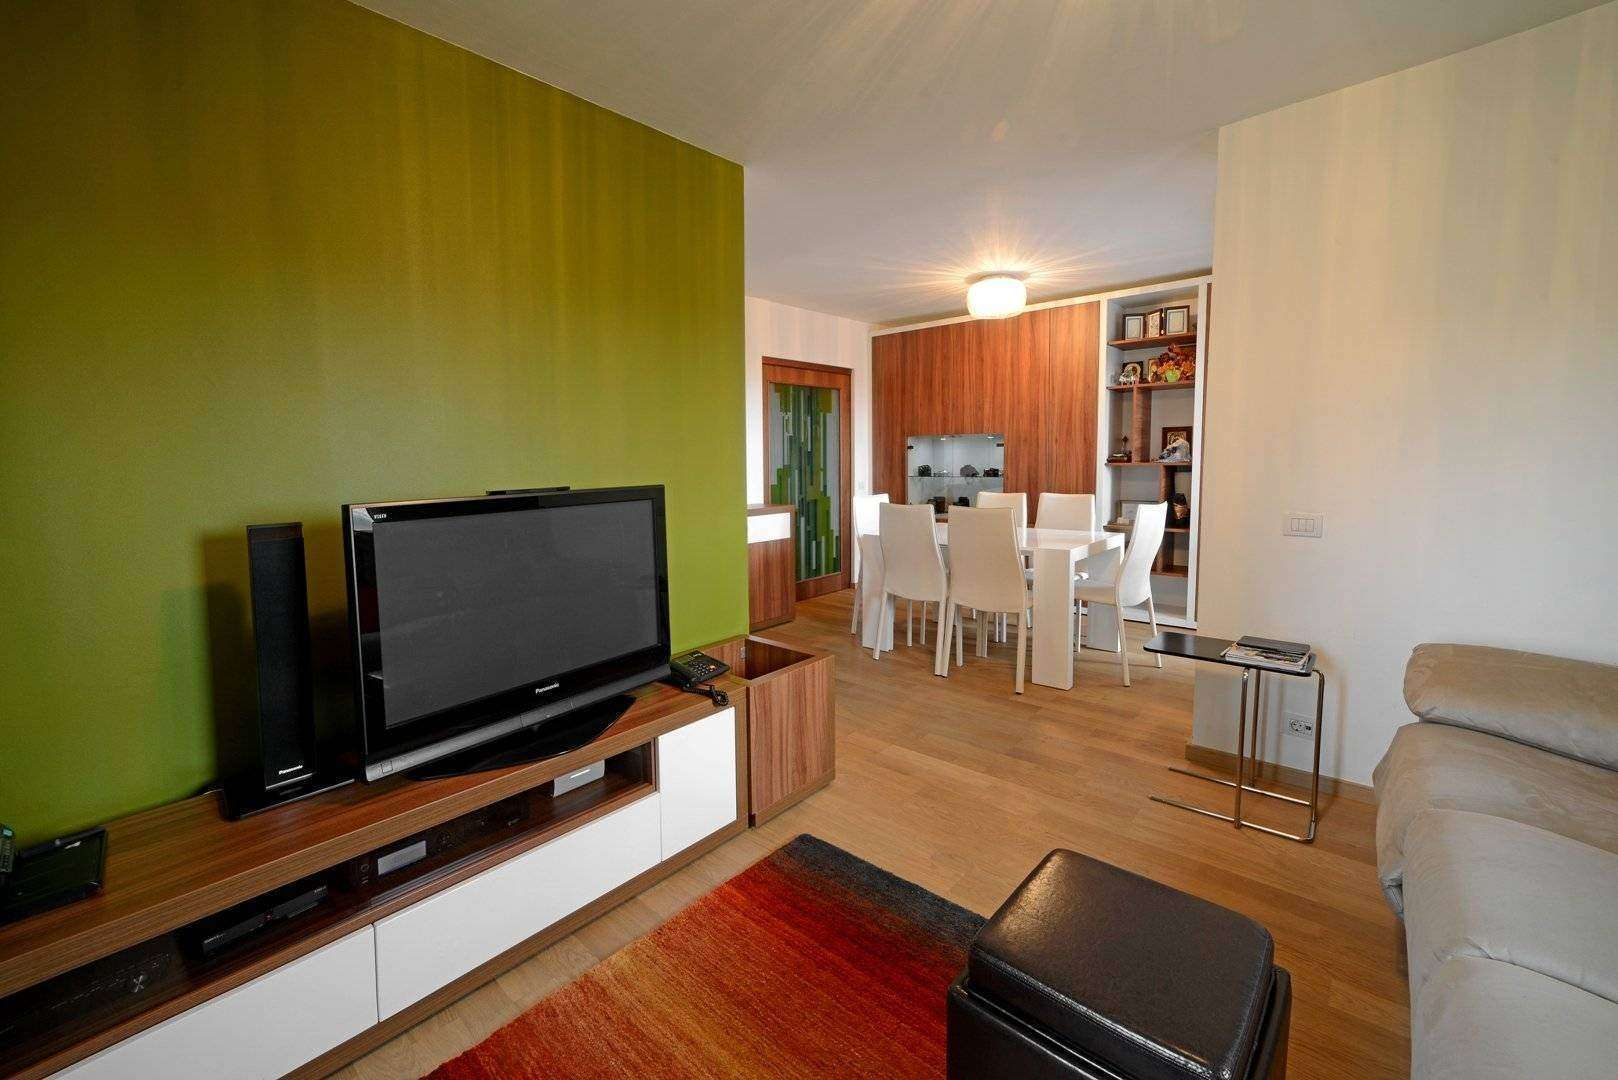 <a href=&quot;mobila living minimalista la comanda&quot;>mobila living rose la comanda<img src='http://www.unican.ro/wp-content/themes/vita/img/dreapta.png' class='pull-right hidden-xs' style='margin-right:-10px;margin-top:-10px; max-height:41px'></a>